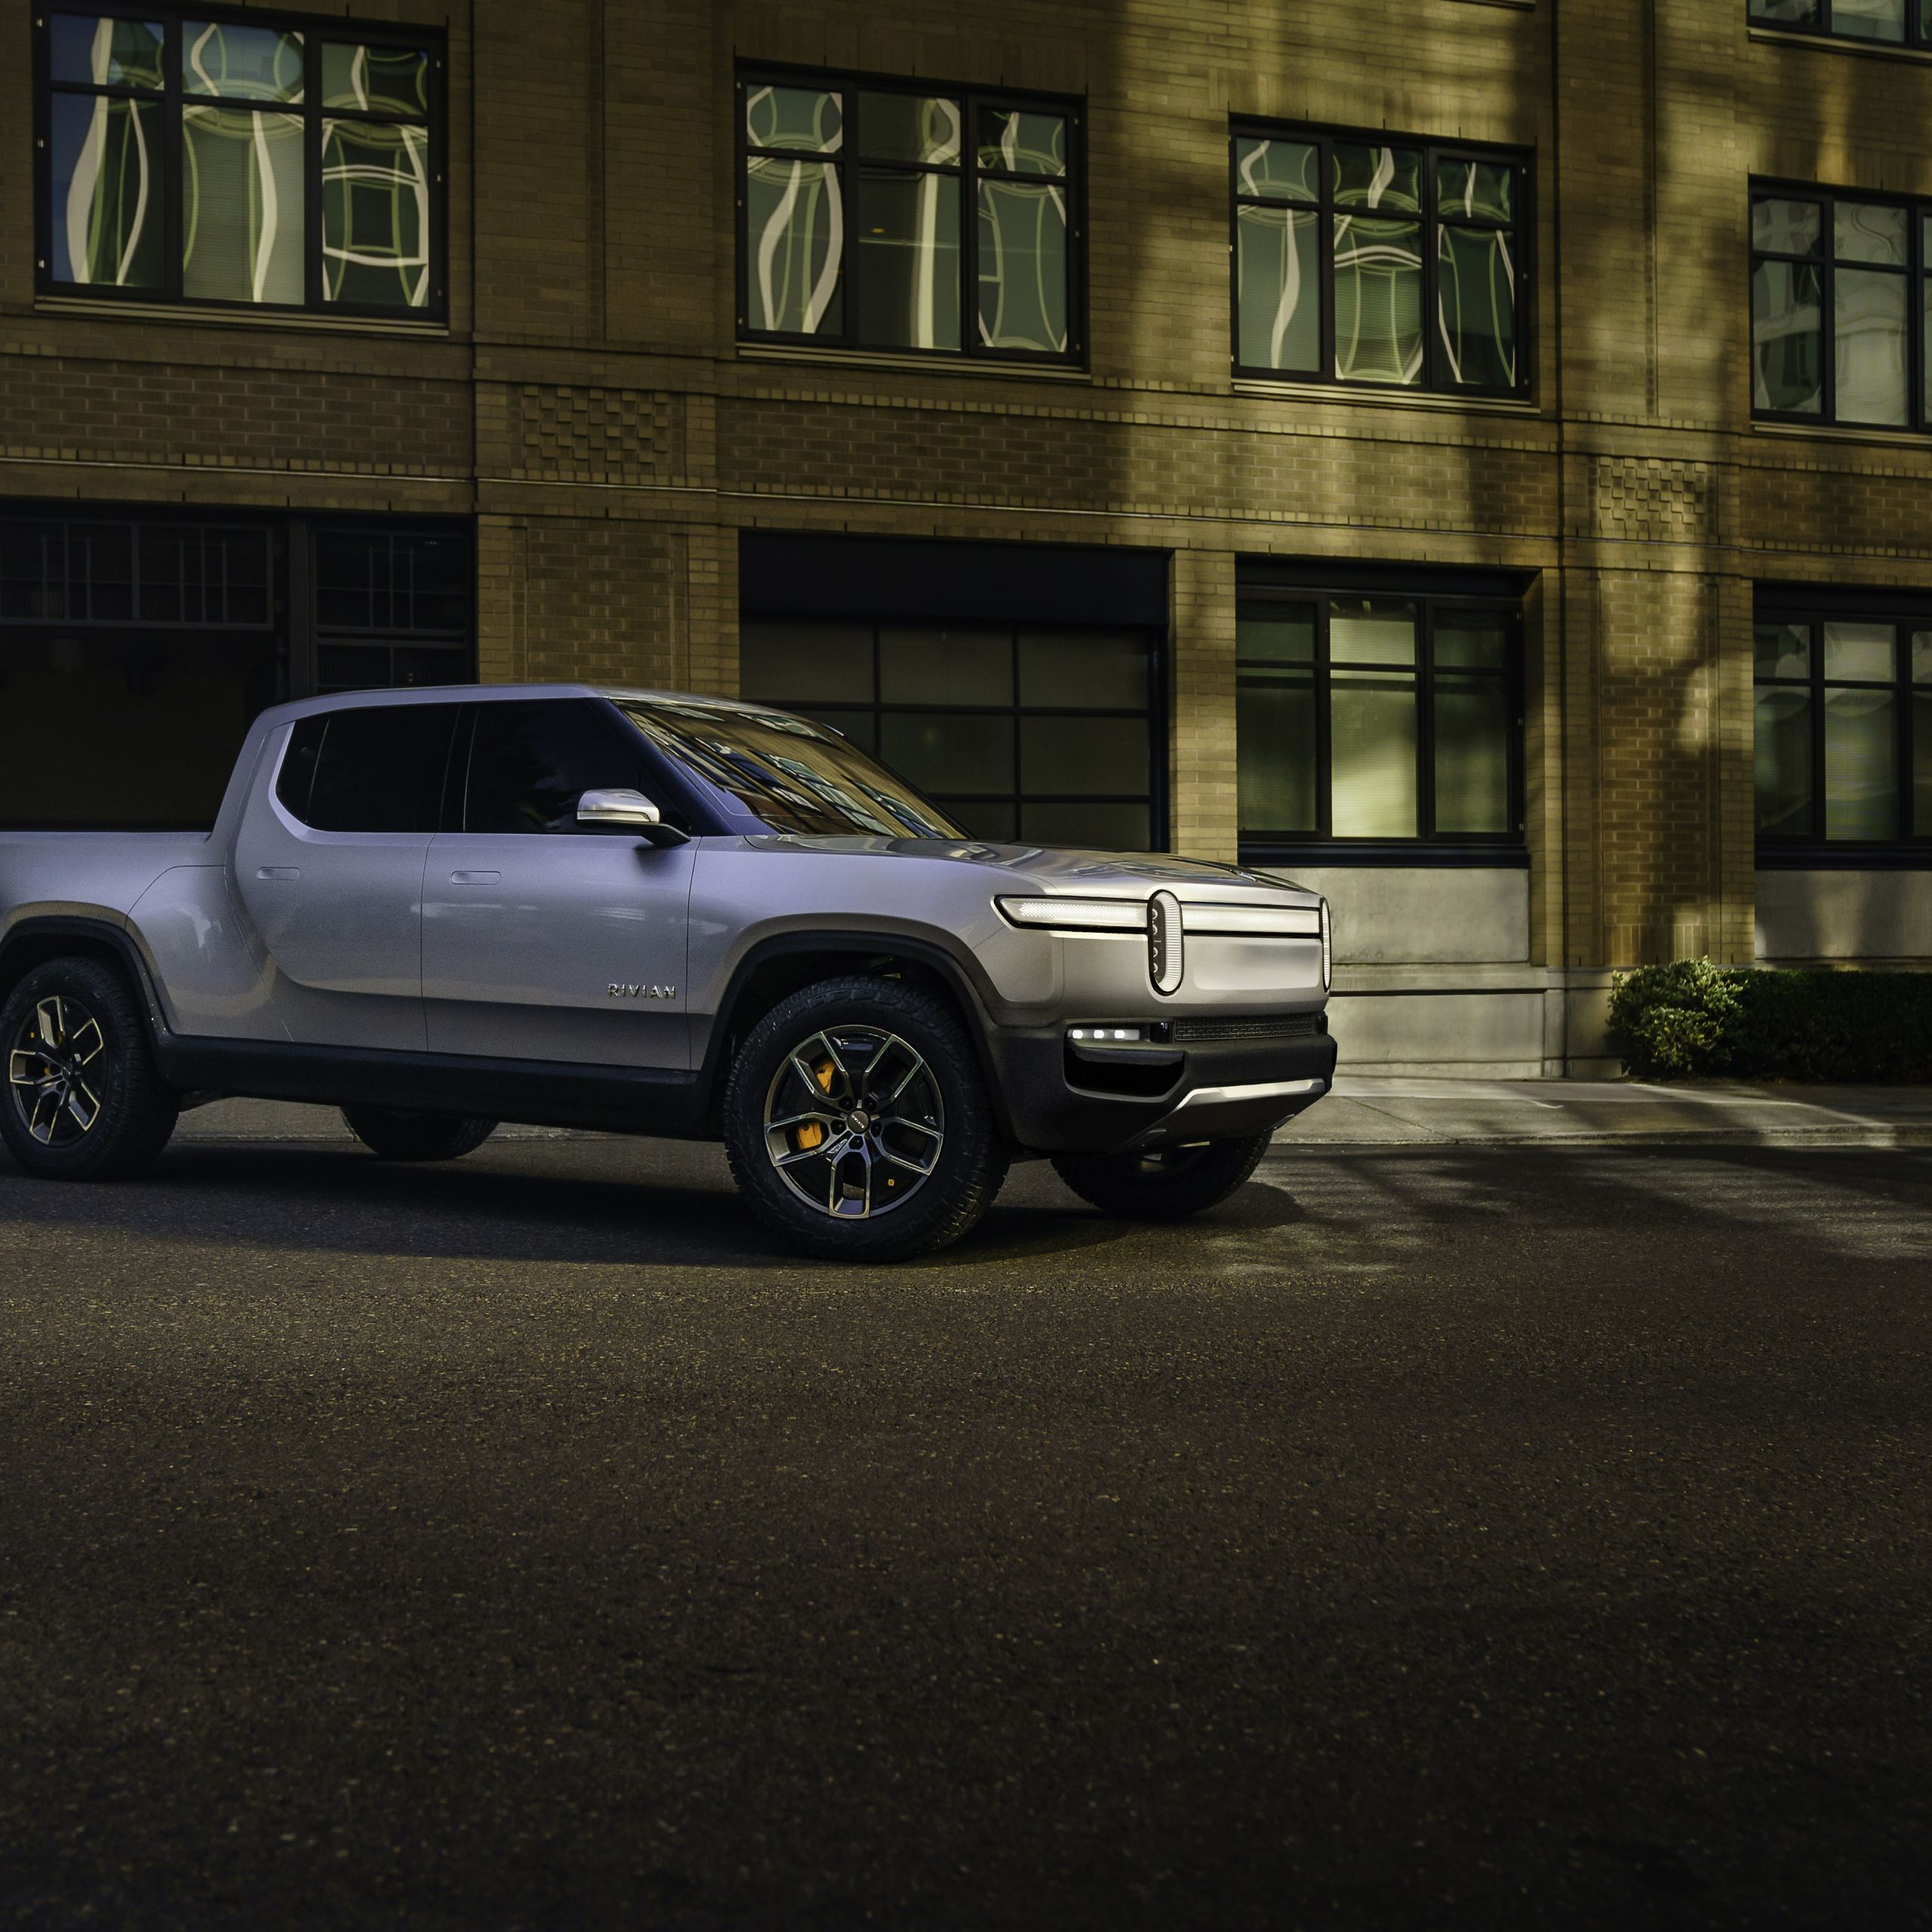 When Does Tesla Truck Come Out Awesome Tesla Cybertruck Launch Date Specs and Details for